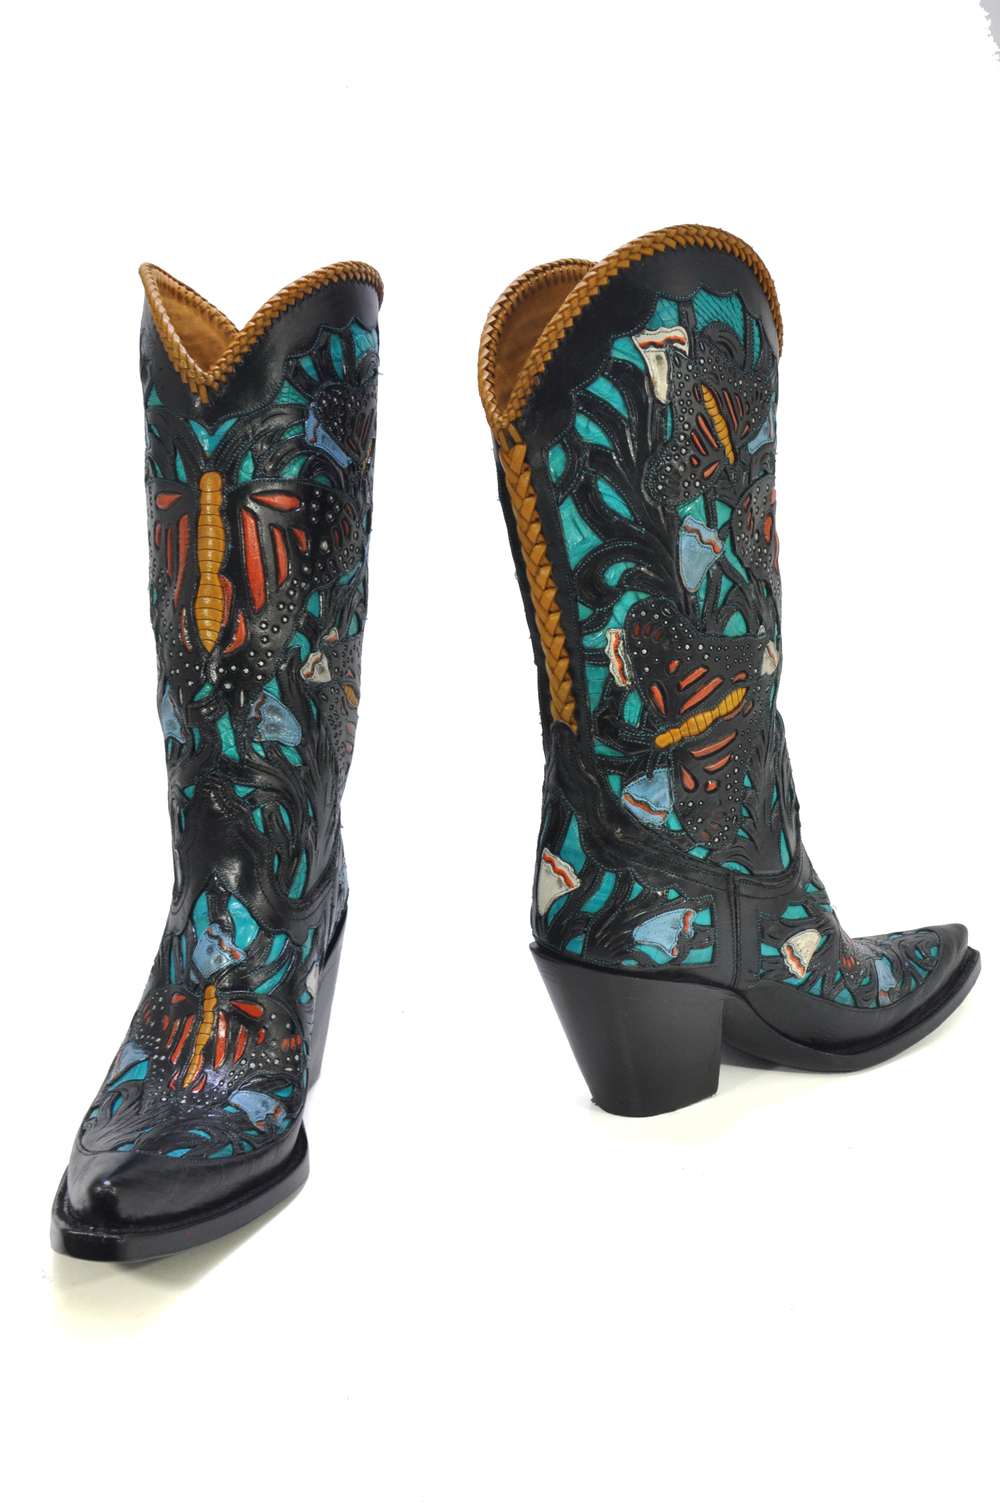 Caiman Monarch features hand tooling, cutouts, overlay, hand painting, braiding, and caiman belly underlay! This is a sexy full featured boot.